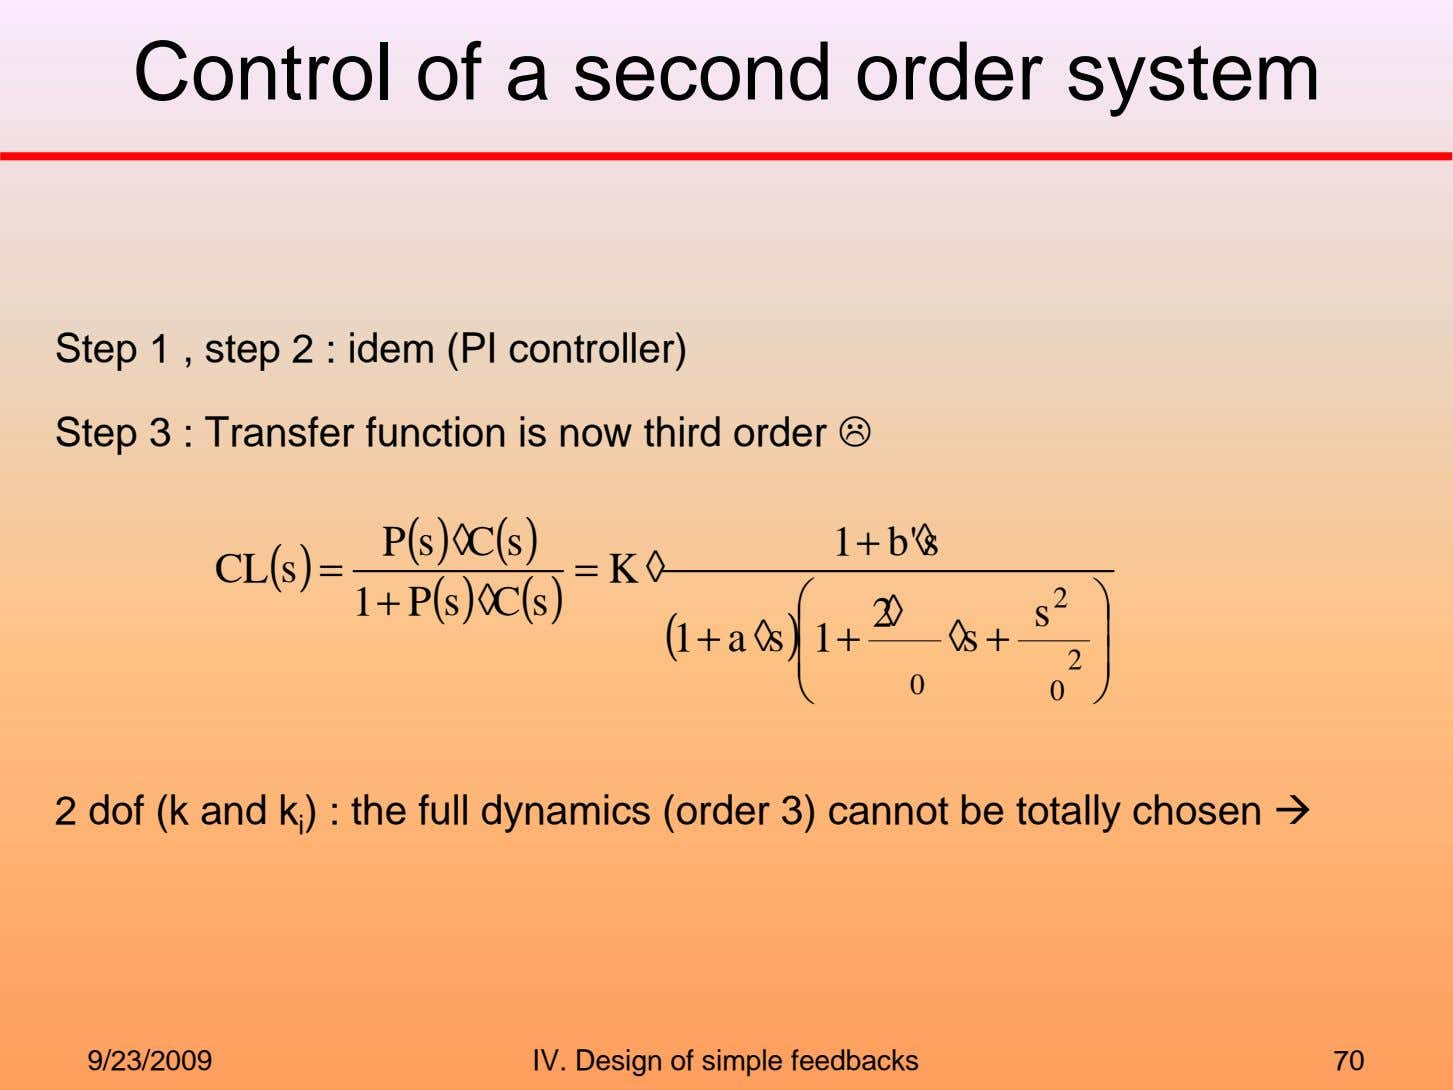 Control of a second order system Step 1 , step 2 : idem (PI controller)